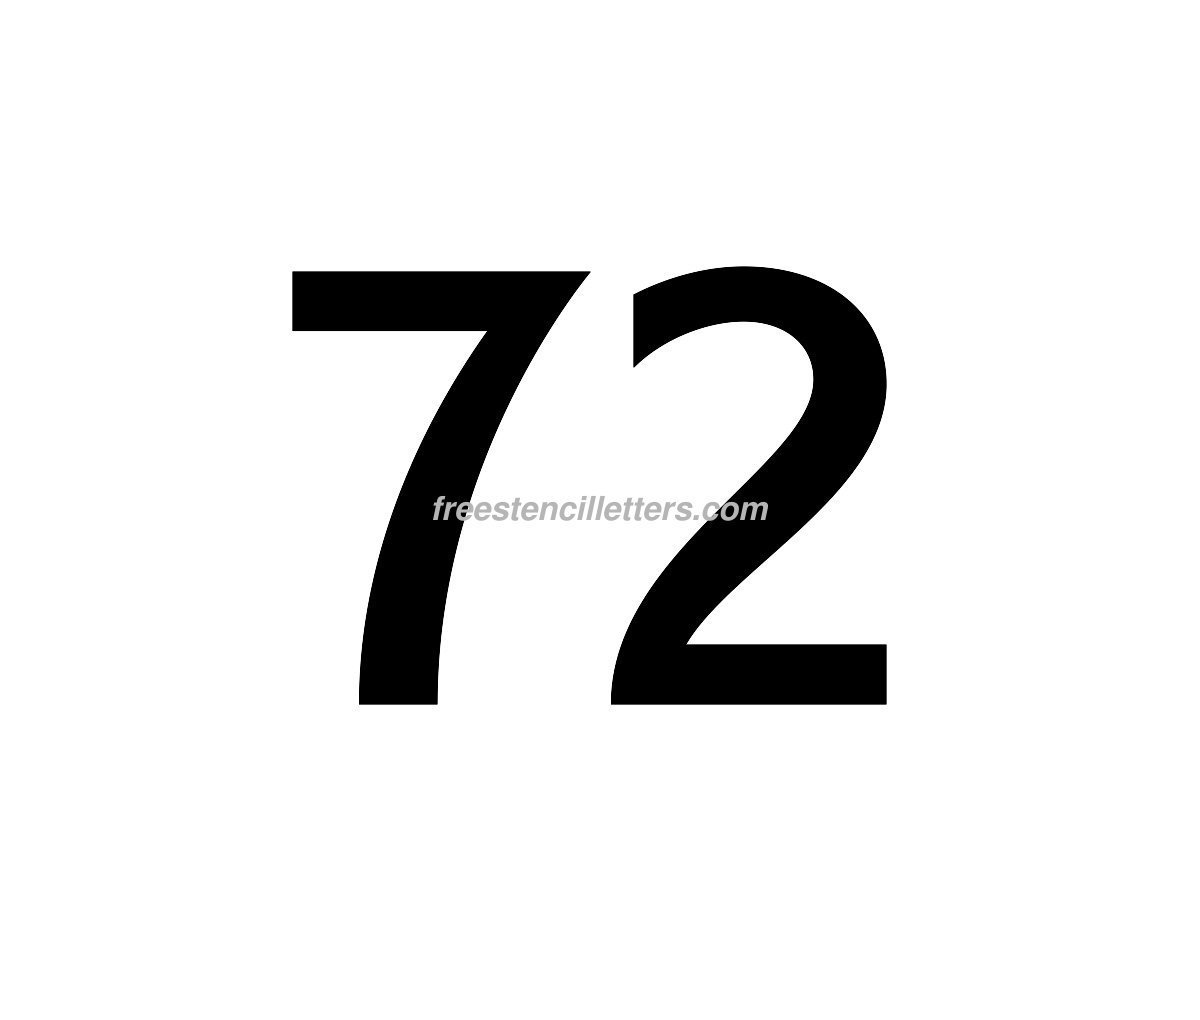 Print Number 72 Letter Stencil - Free Stencil Letters